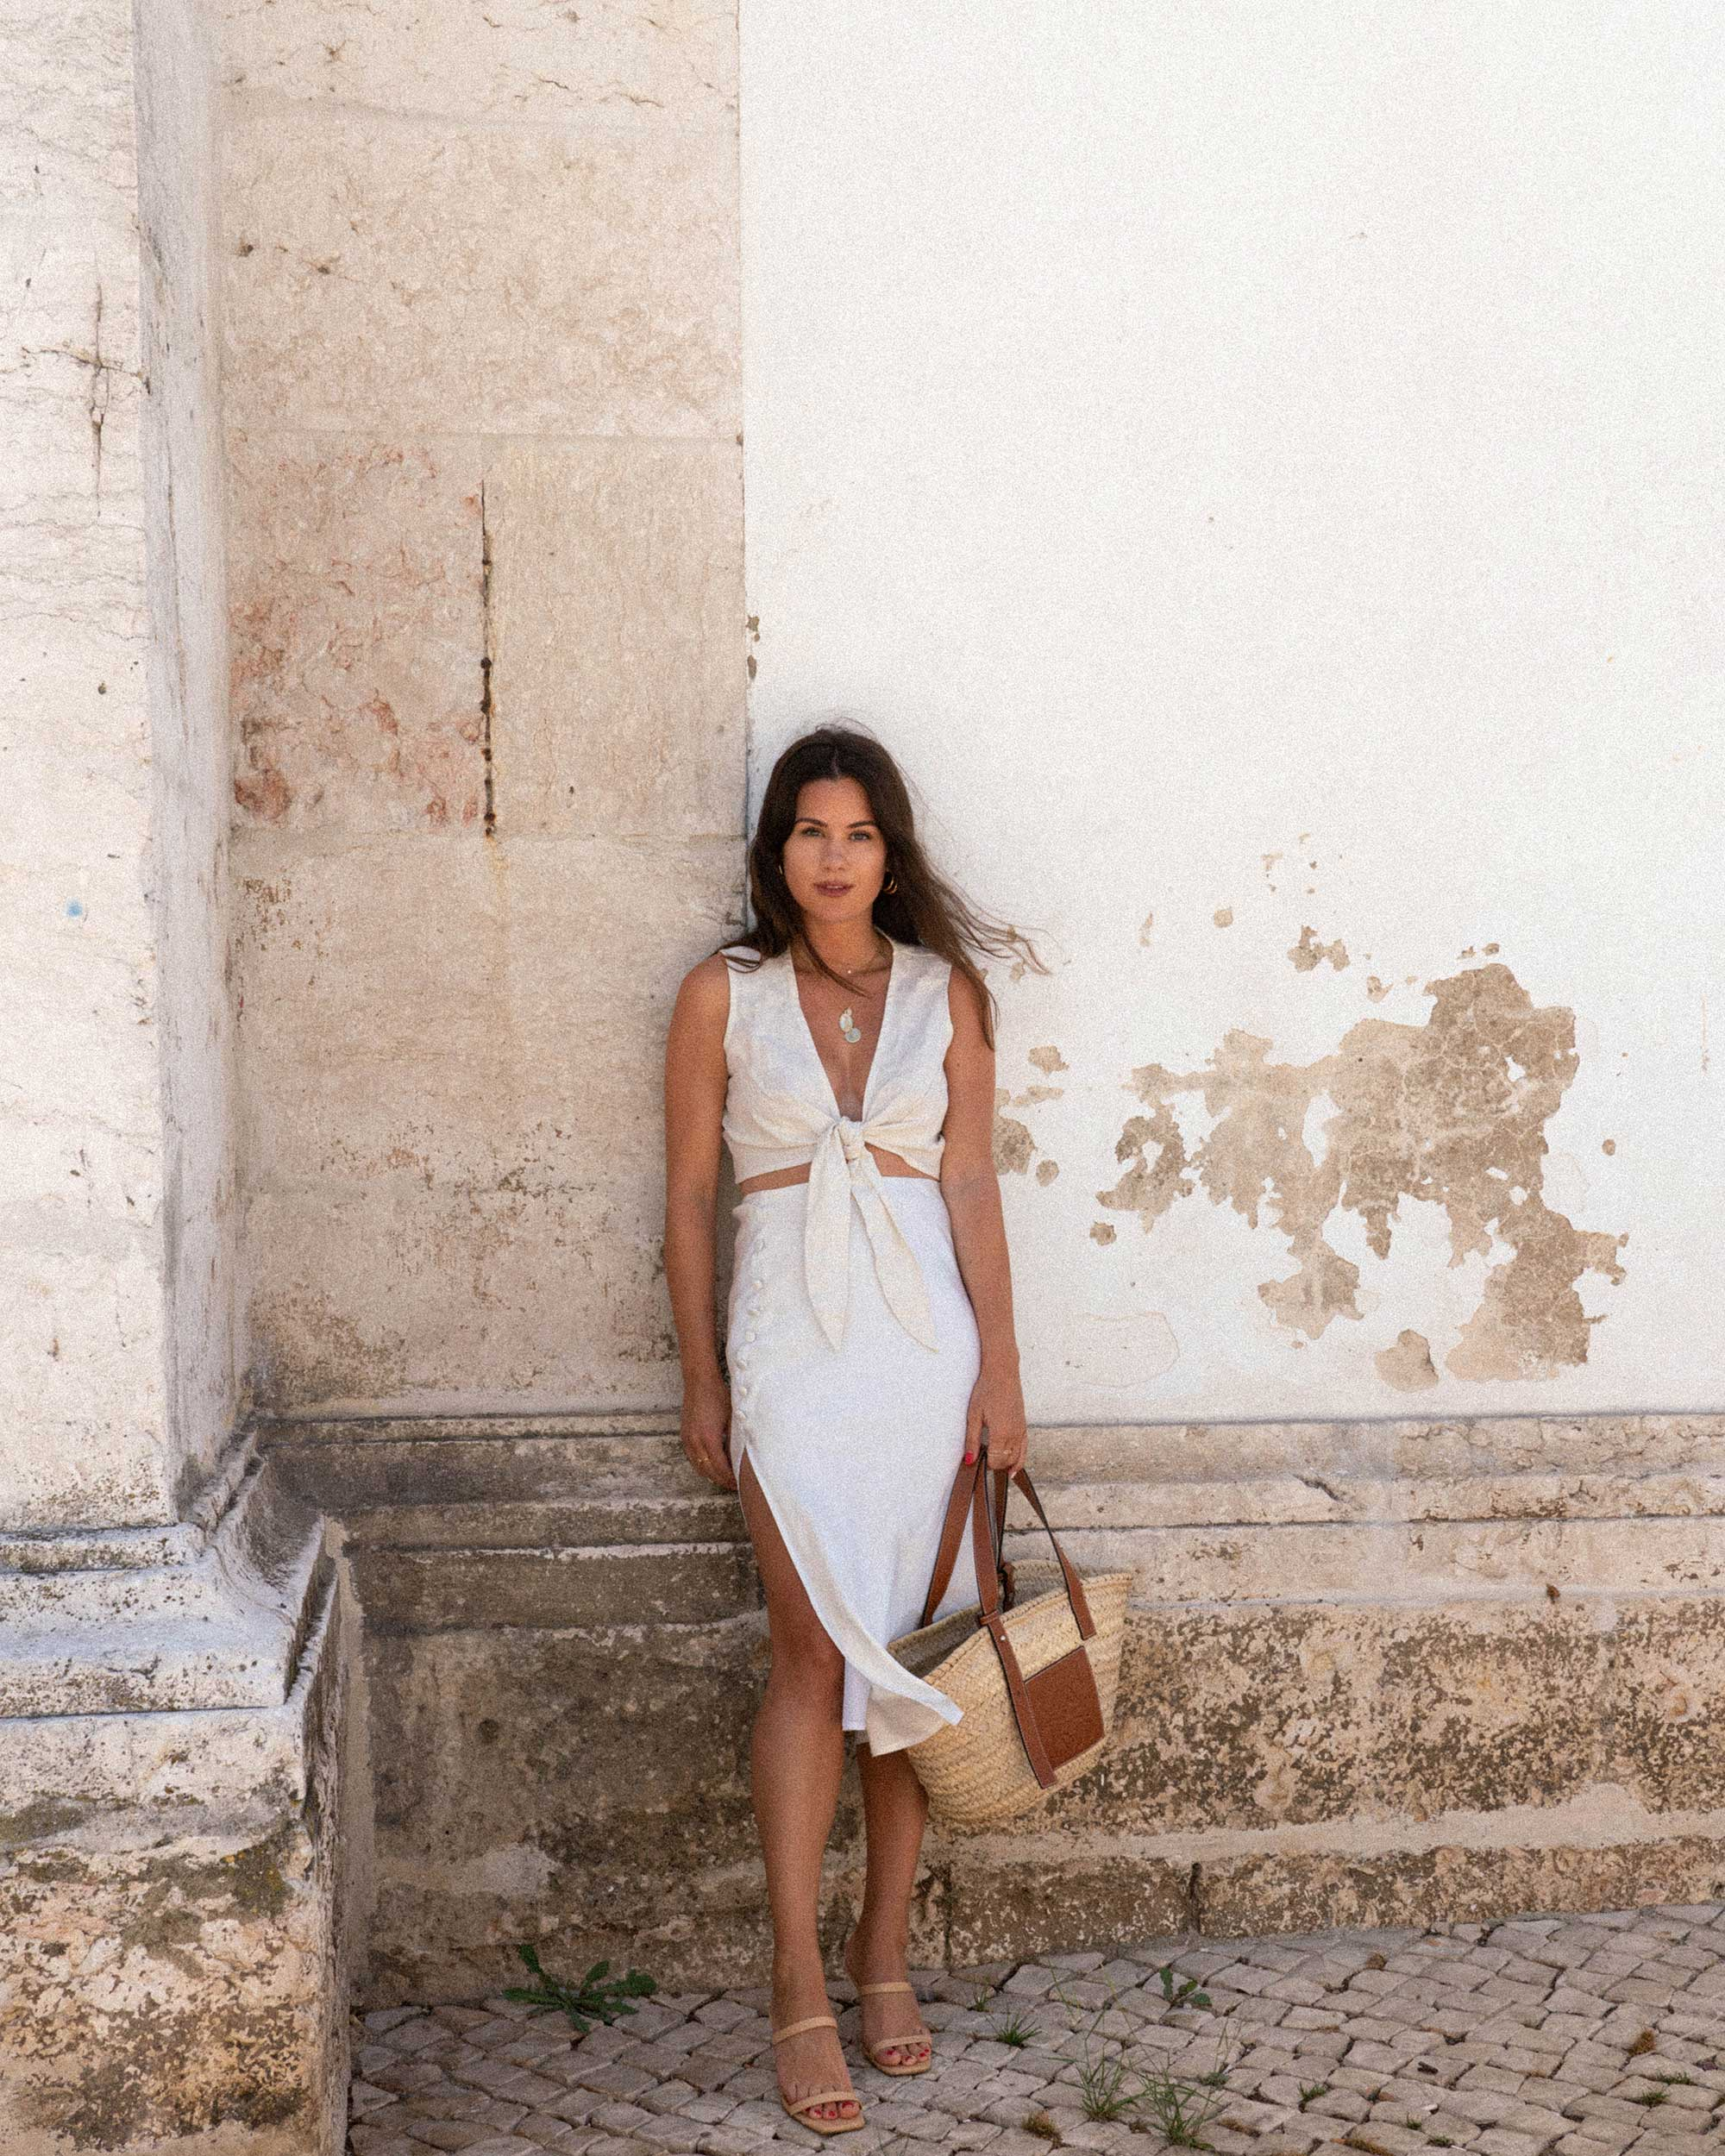 Shades of Portugal - Summering in Lisbon, Portugal wearing Faithfull the Brand Marcie plunging cropped tie top and Loewe raffia basket tote bag for the perfect hot-weather outfit.